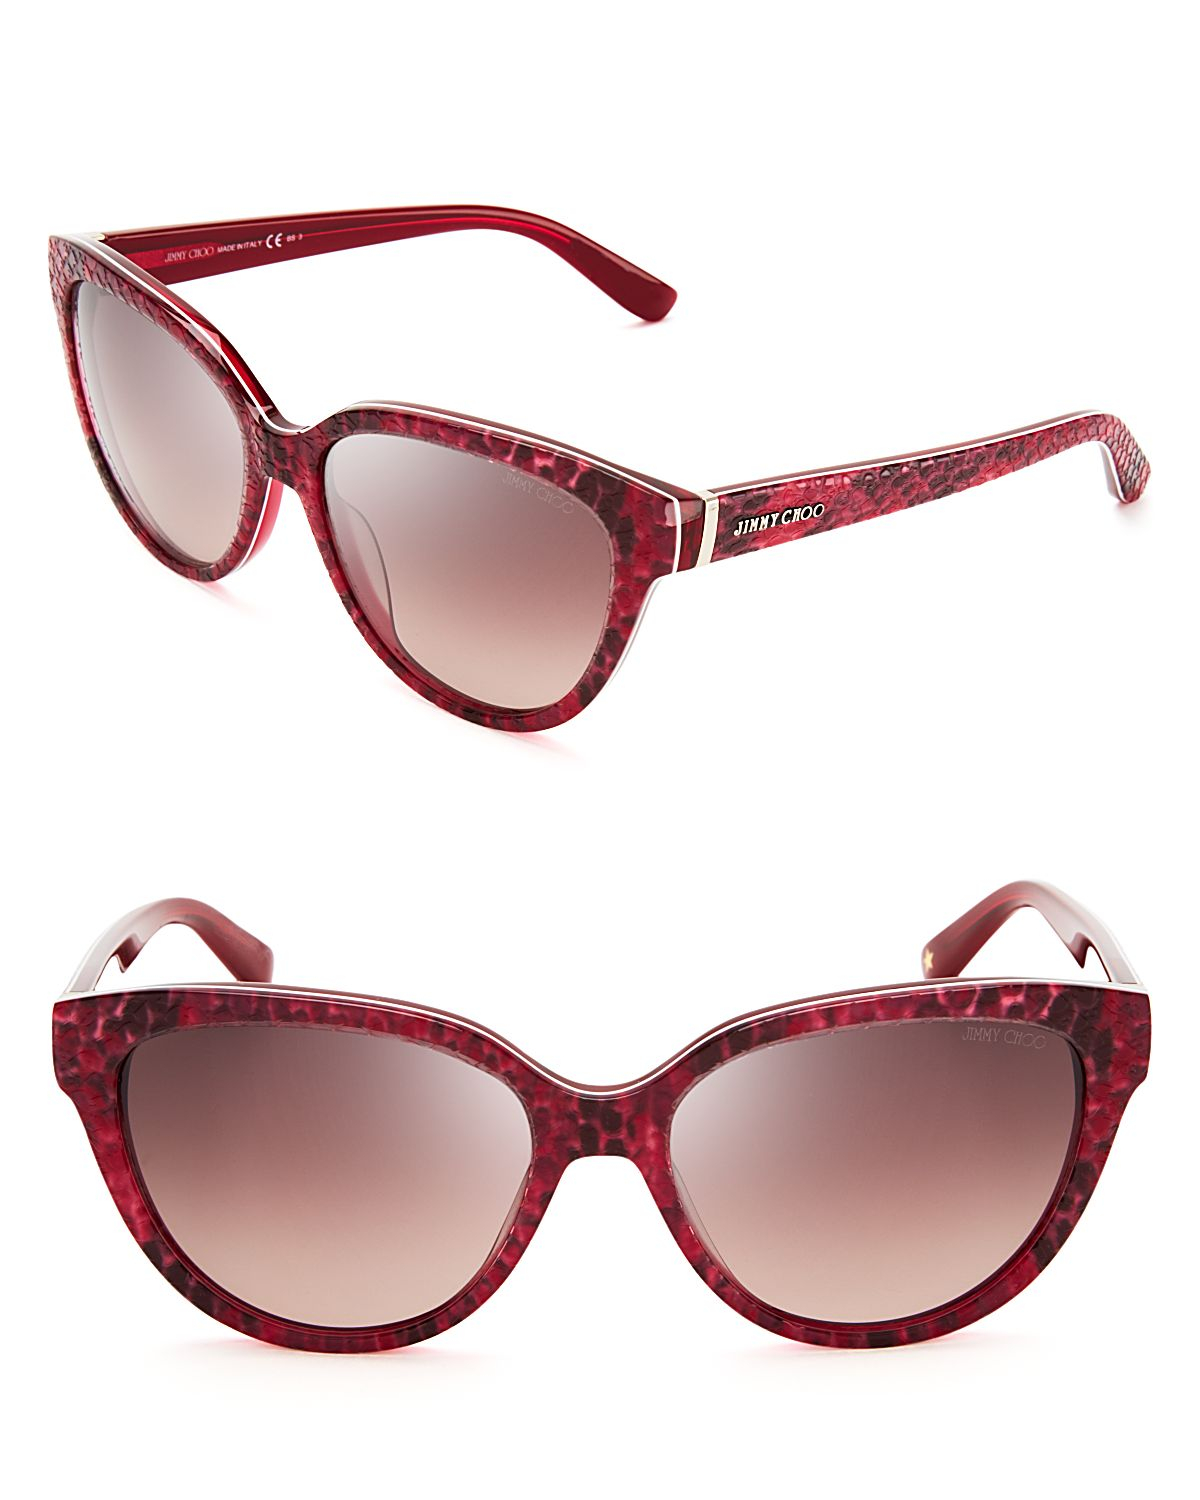 0fcabe6cb03 Lyst - Jimmy Choo Odette Pythonprint Cat Eye Sunglasses in Red